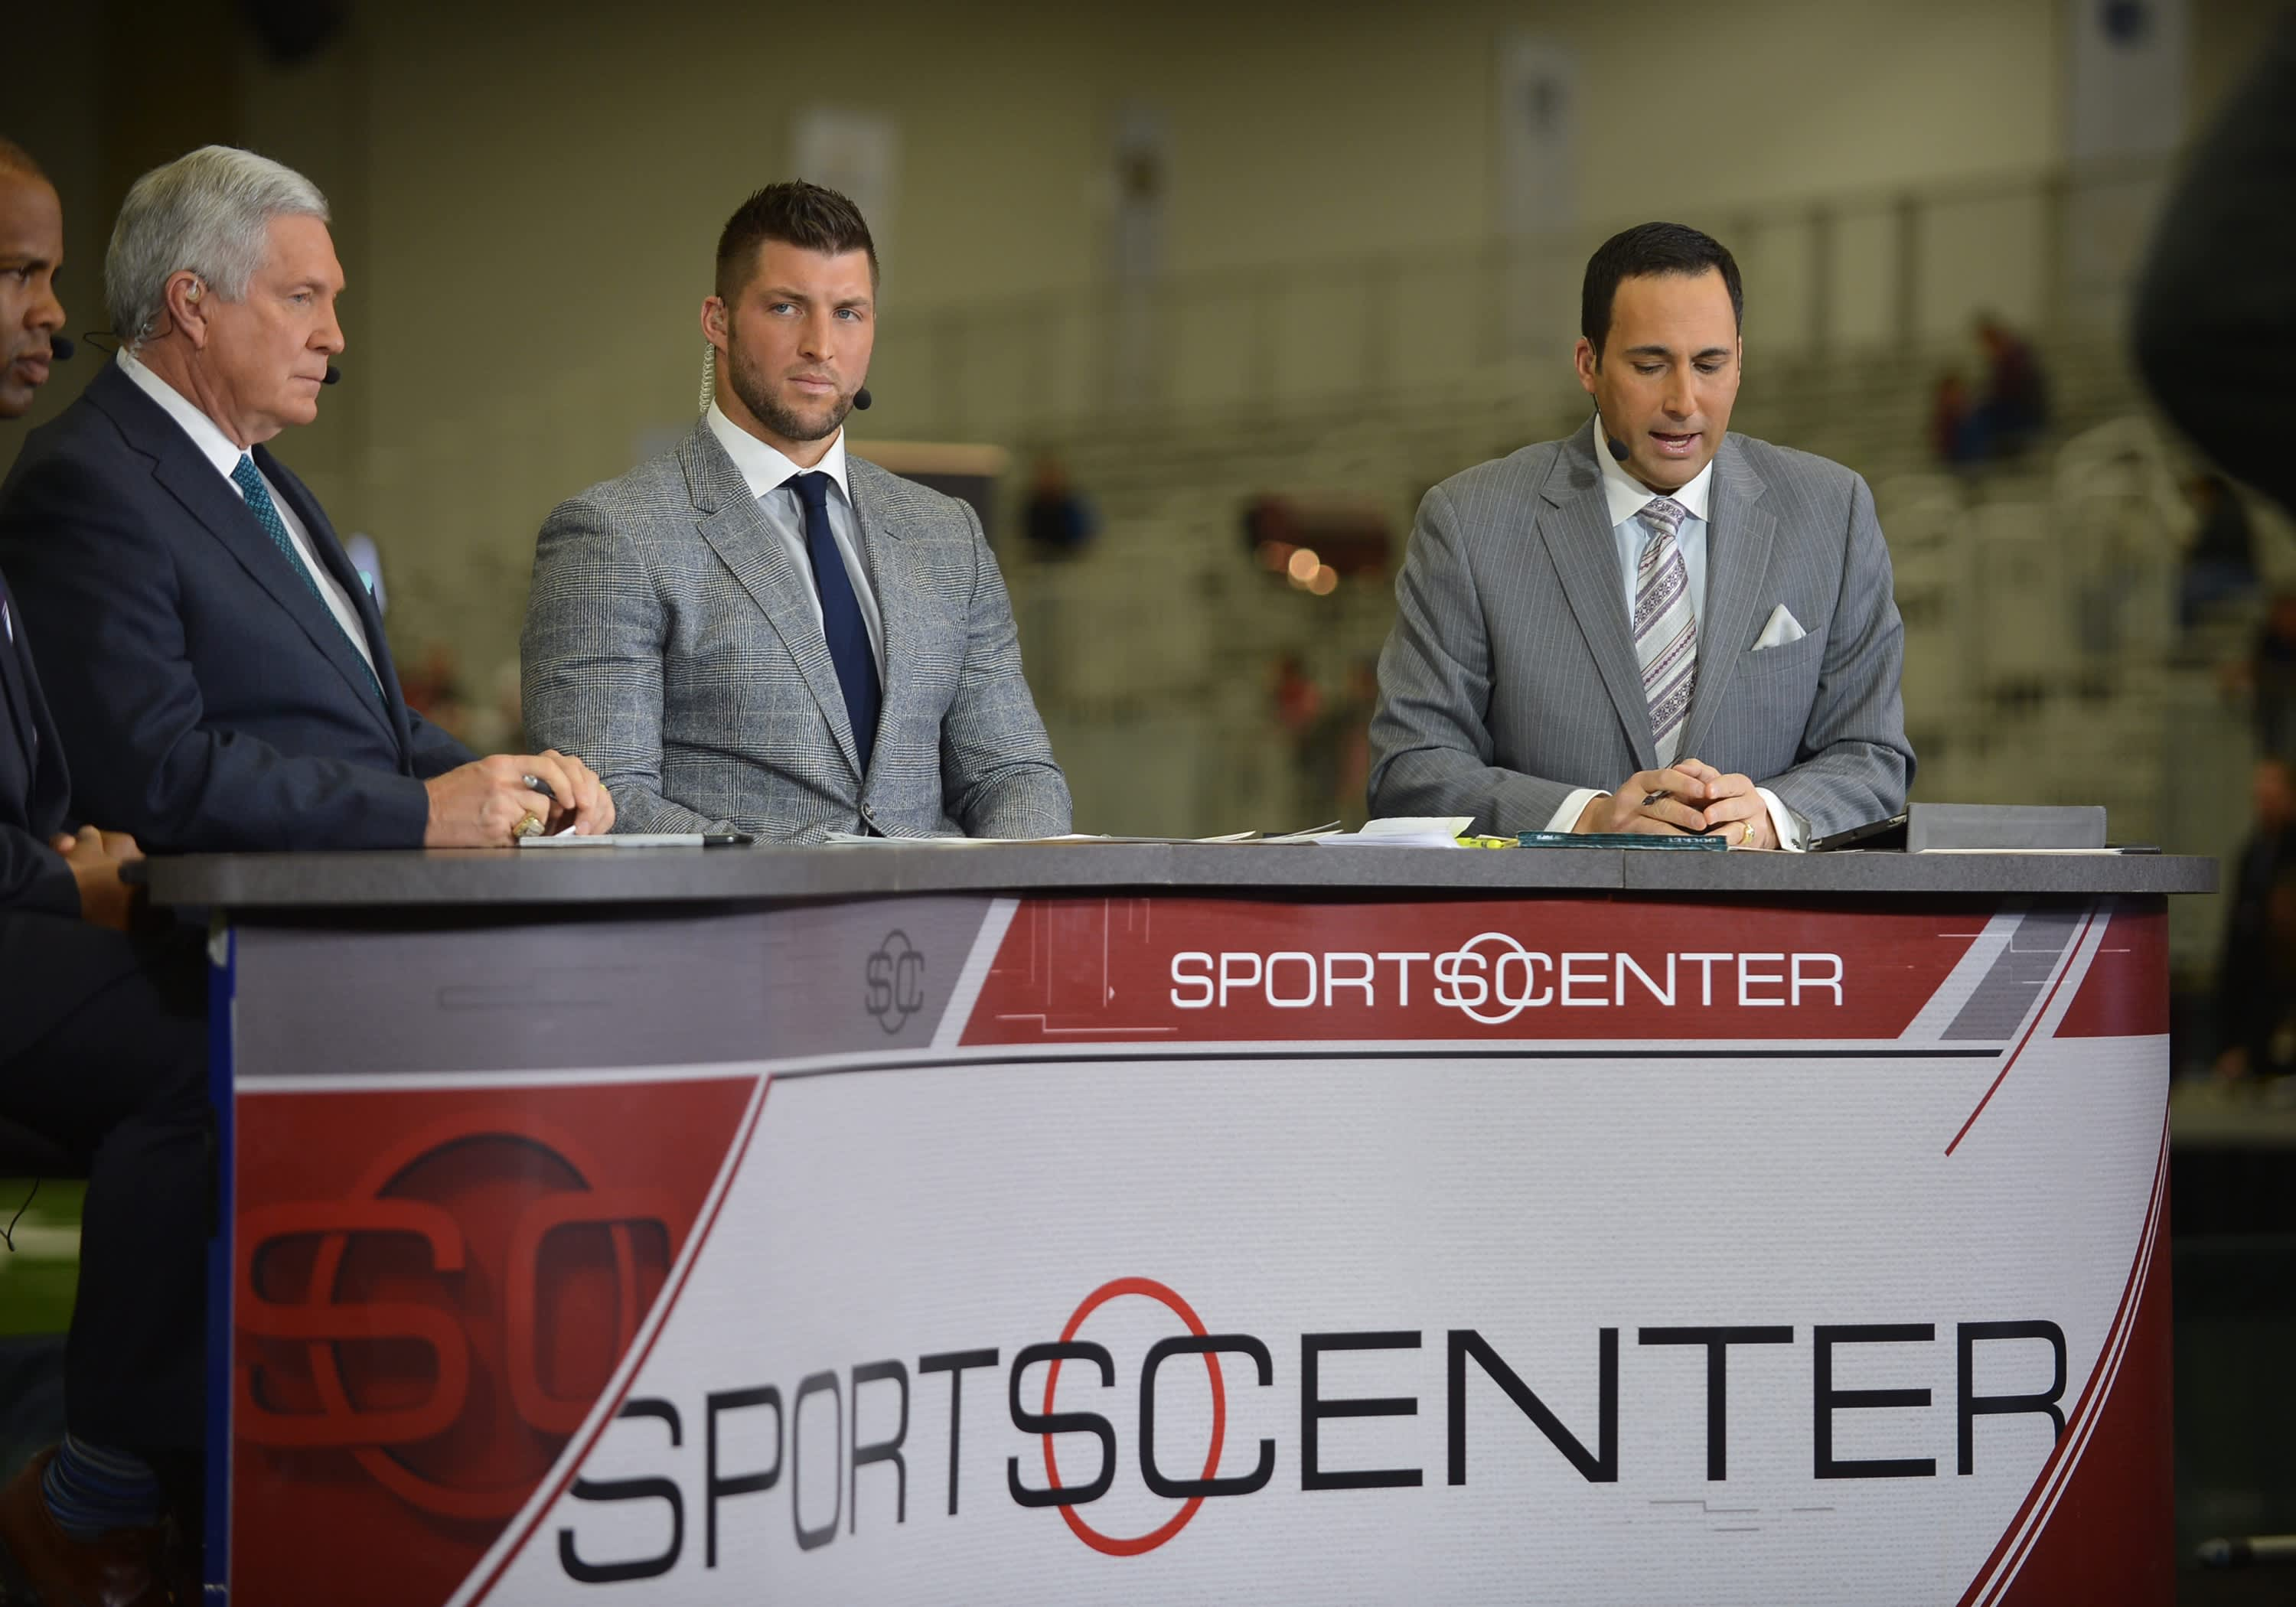 Does ESPN's 'SportsCenter' have a future in a digital world?